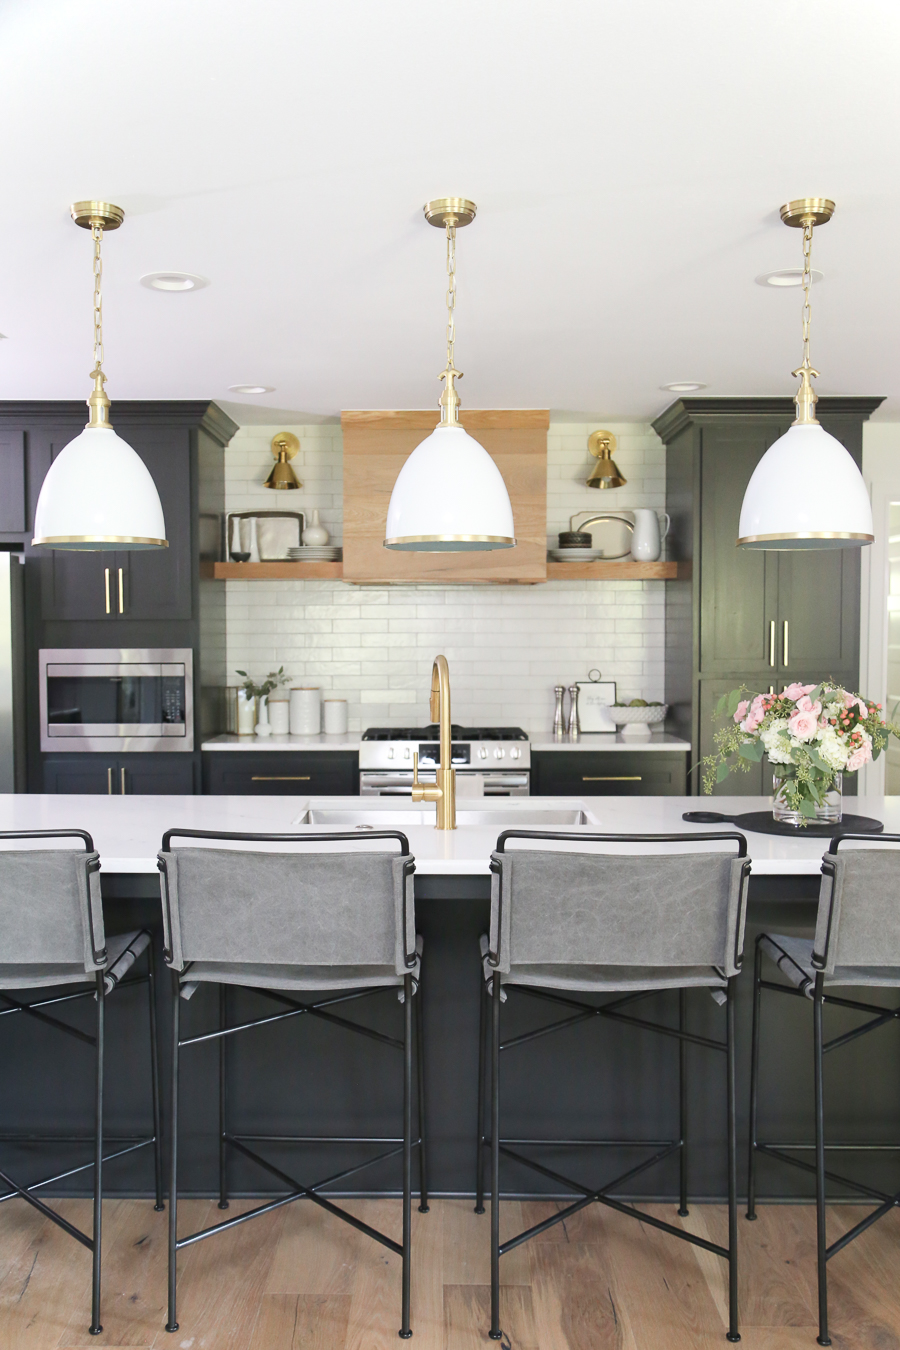 CC and Mike Modern Navy and Cedar Ranch Style Remodel navy brick with black front door and cedar posts and shutters black kitchen cabinets with gold hardware and a wood vent hood open shelving with sconces and a gold faucet with gray canvas bar stools